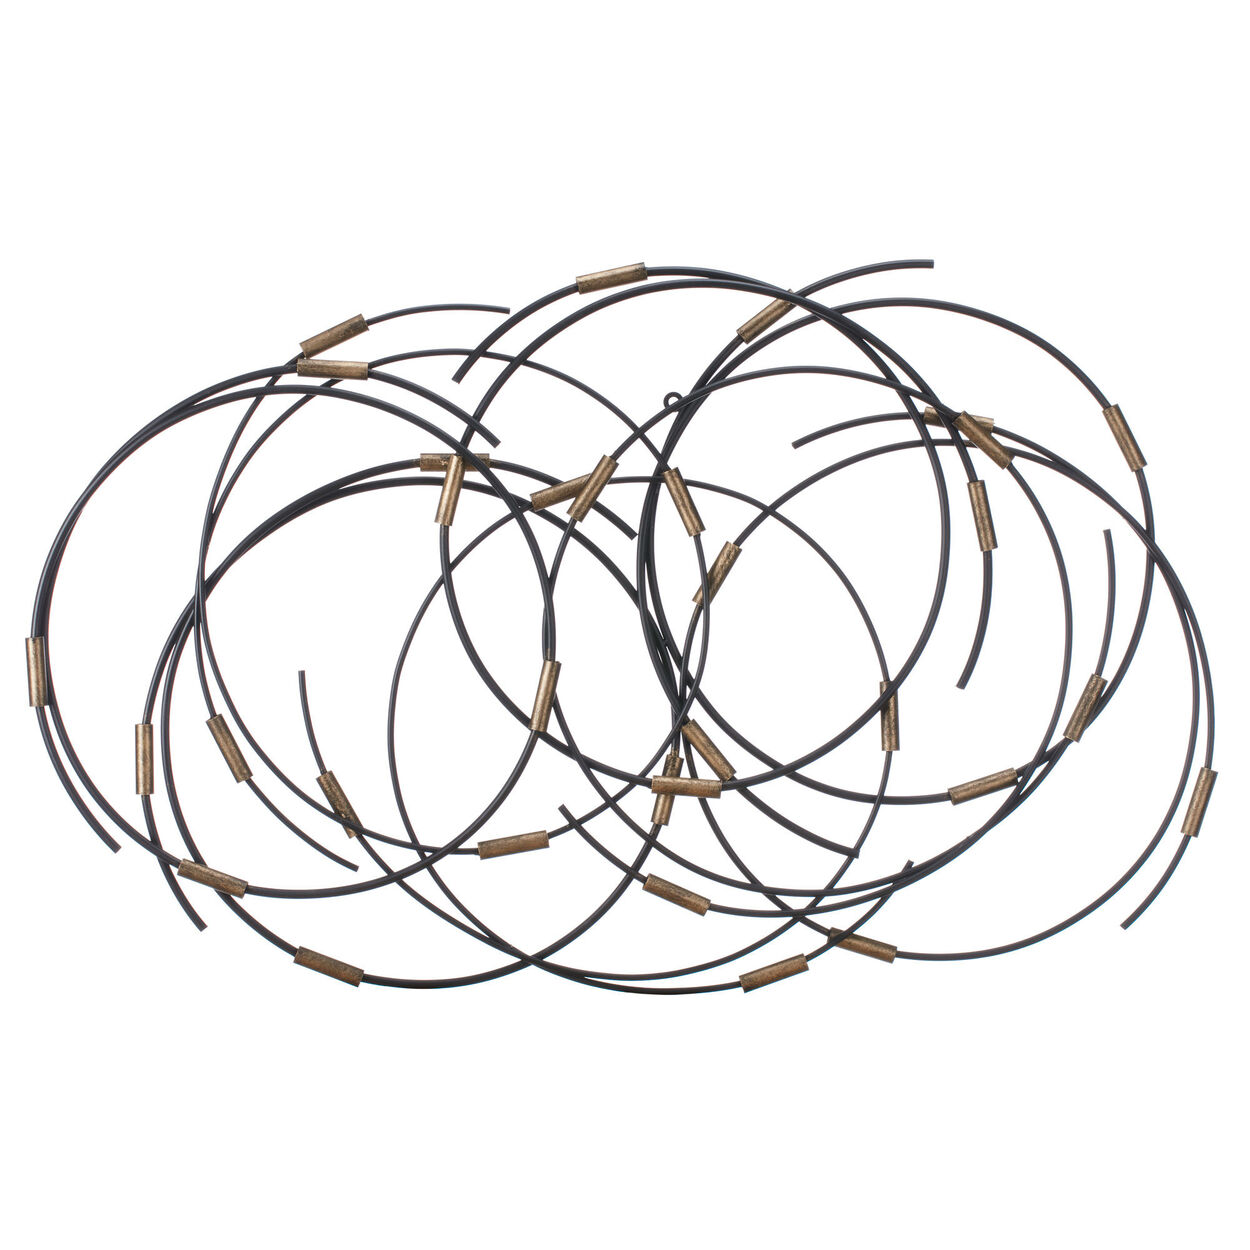 Metal Rings Wall Art